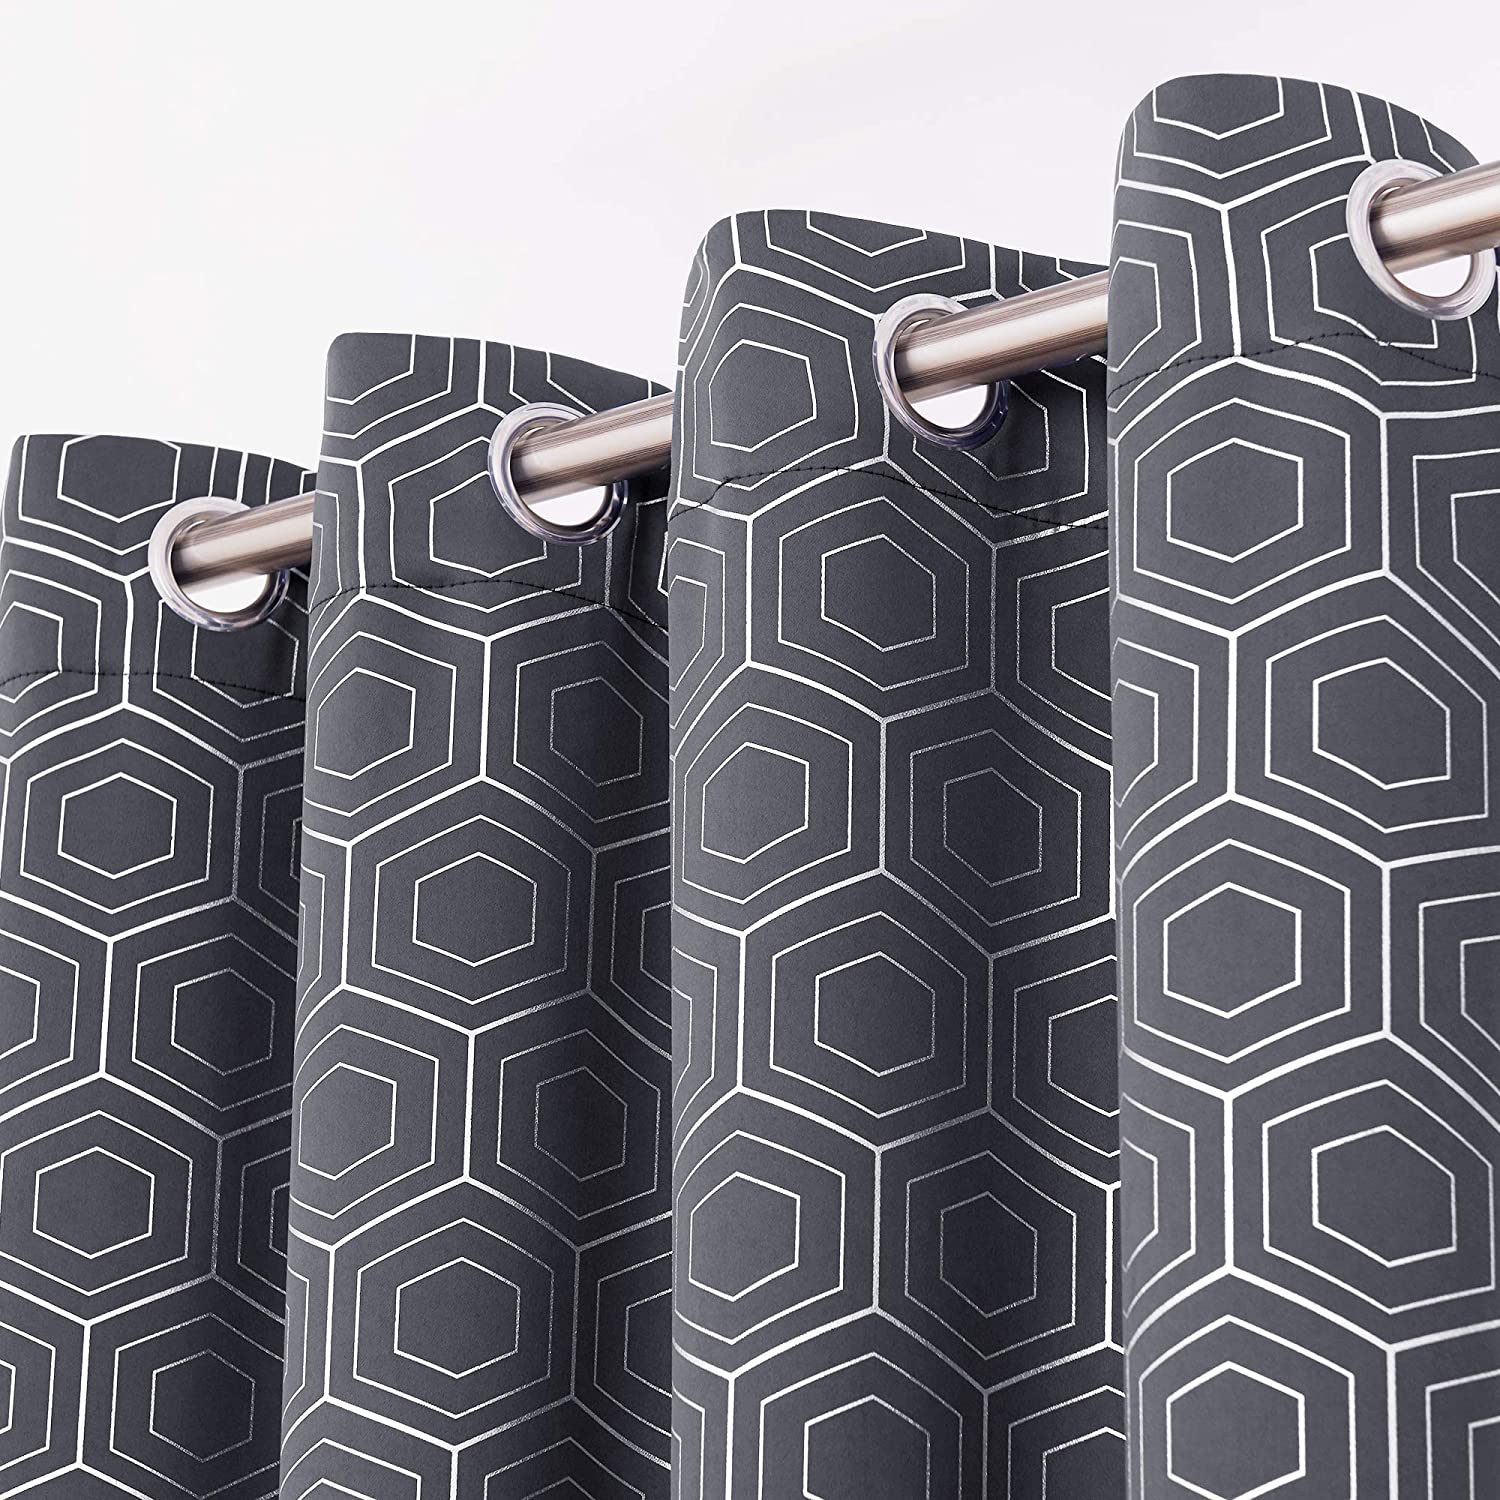 Deconovo Silver Hexagon Geometrical Blackout Curtains Thermal Insulated Heat Blocking Grommet Drapes for Living Room and Kids Room Grey 52x95 Inch 2 Panels